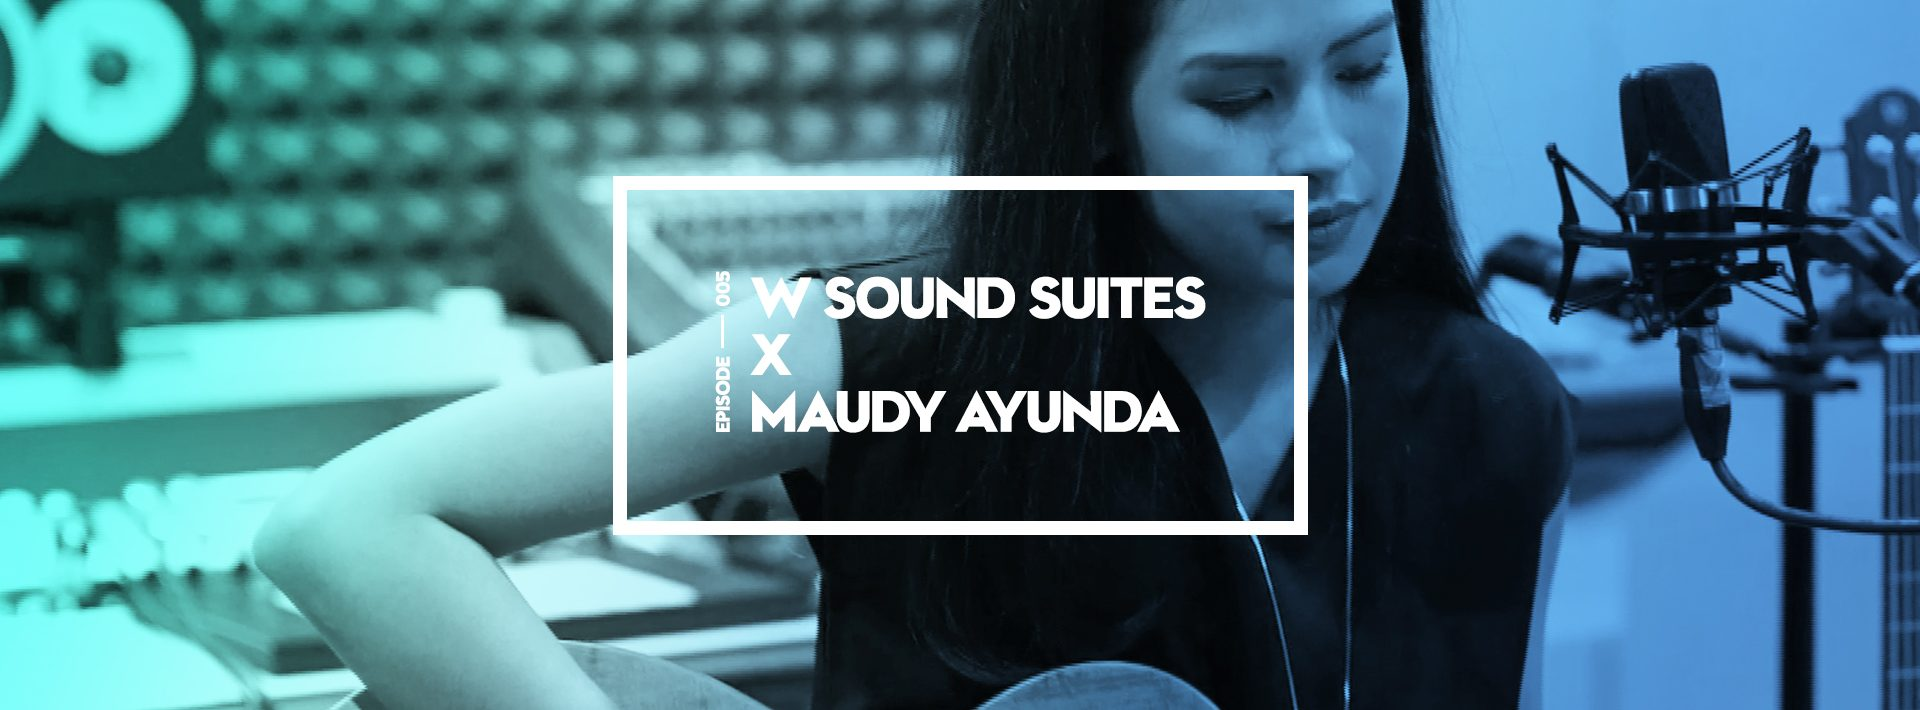 Whotels_SoundingOffWithMaudy_Podcast_desktop